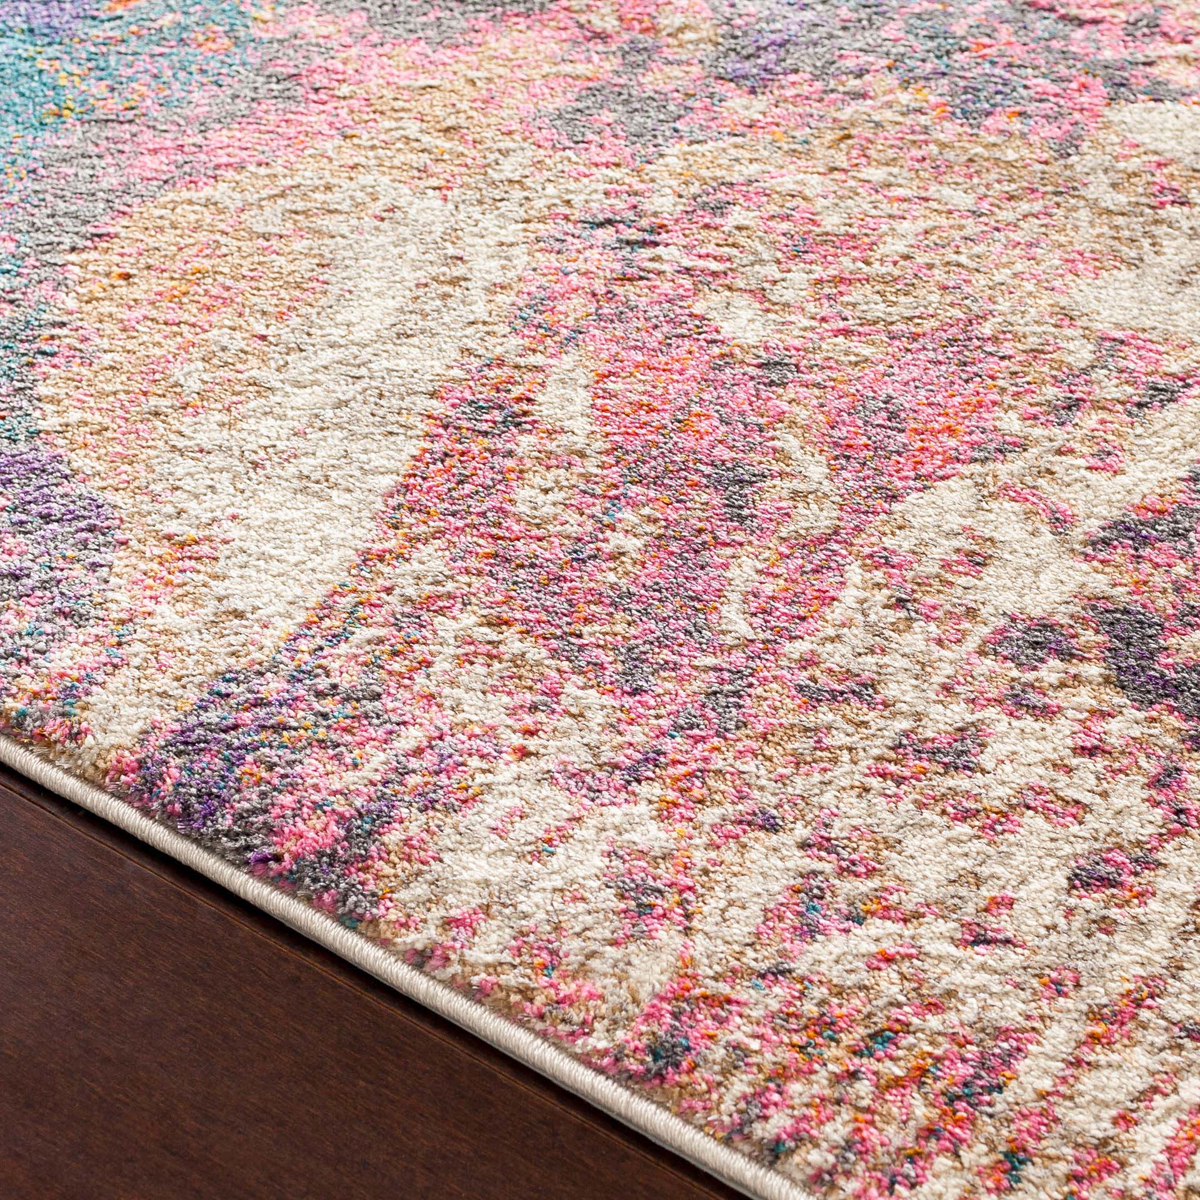 Abstract art inspired Turkish area rug with splashes of cream, purple, pink, orange and teal - Close up